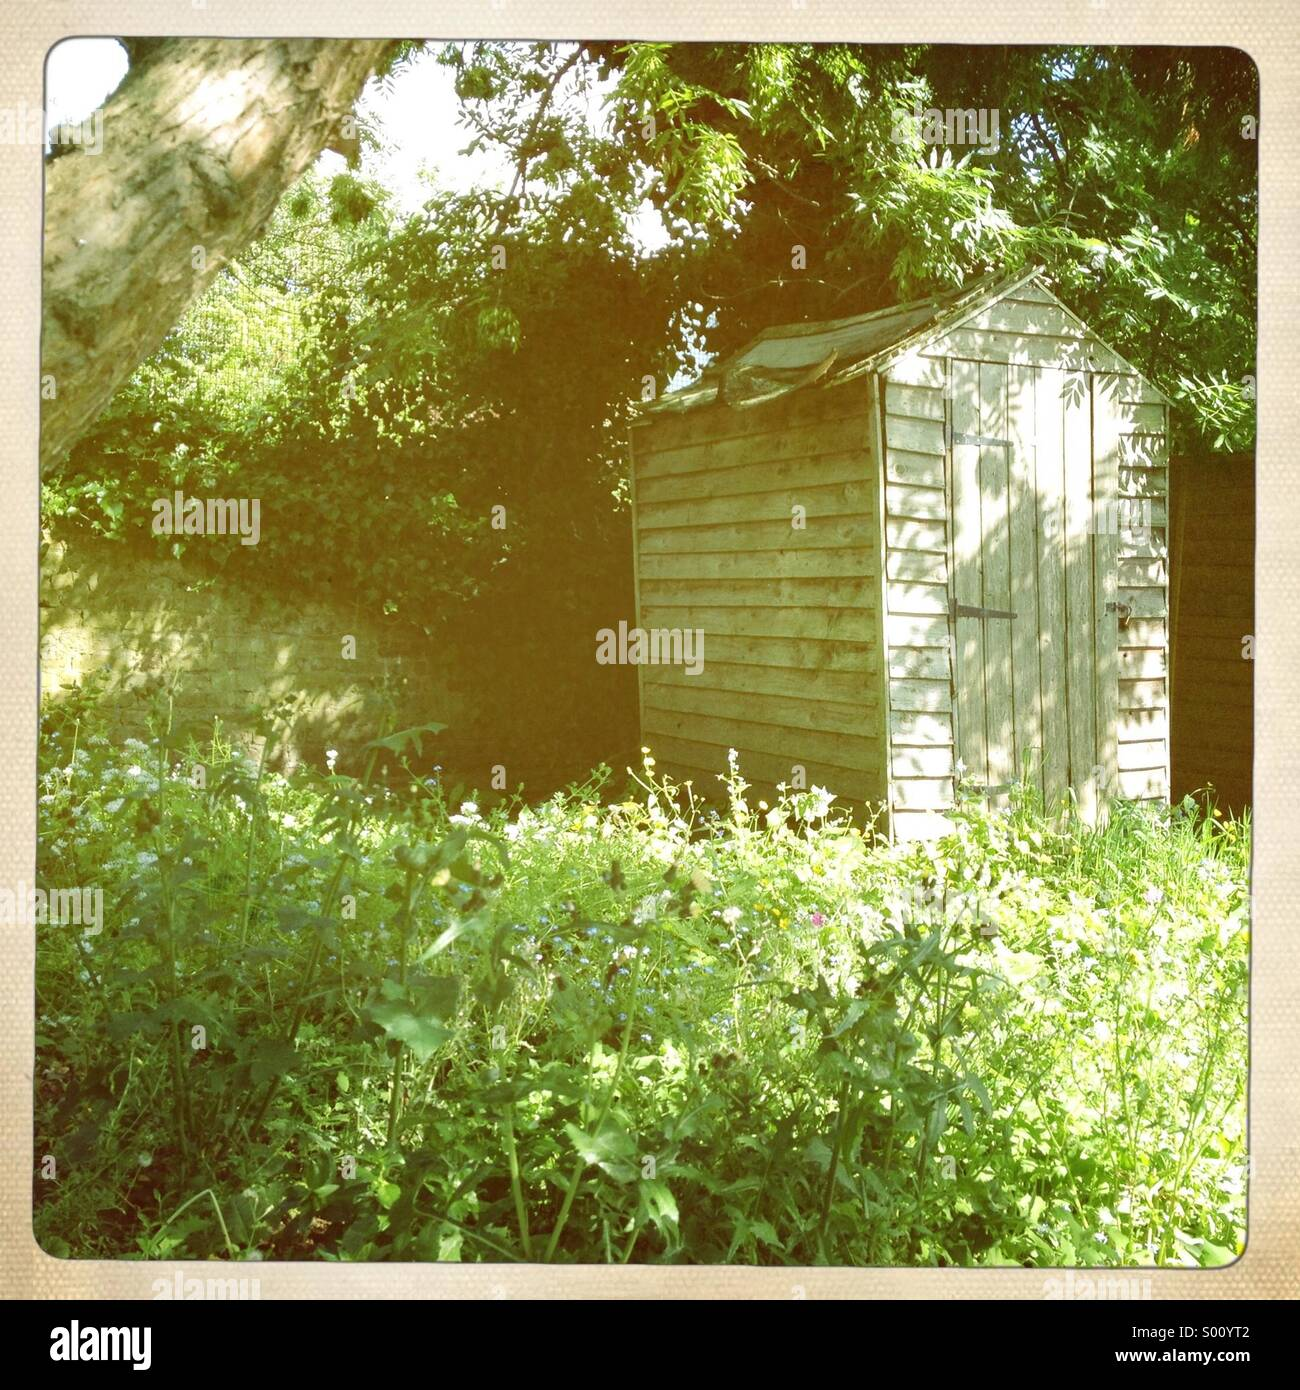 Garden shed - Stock Image